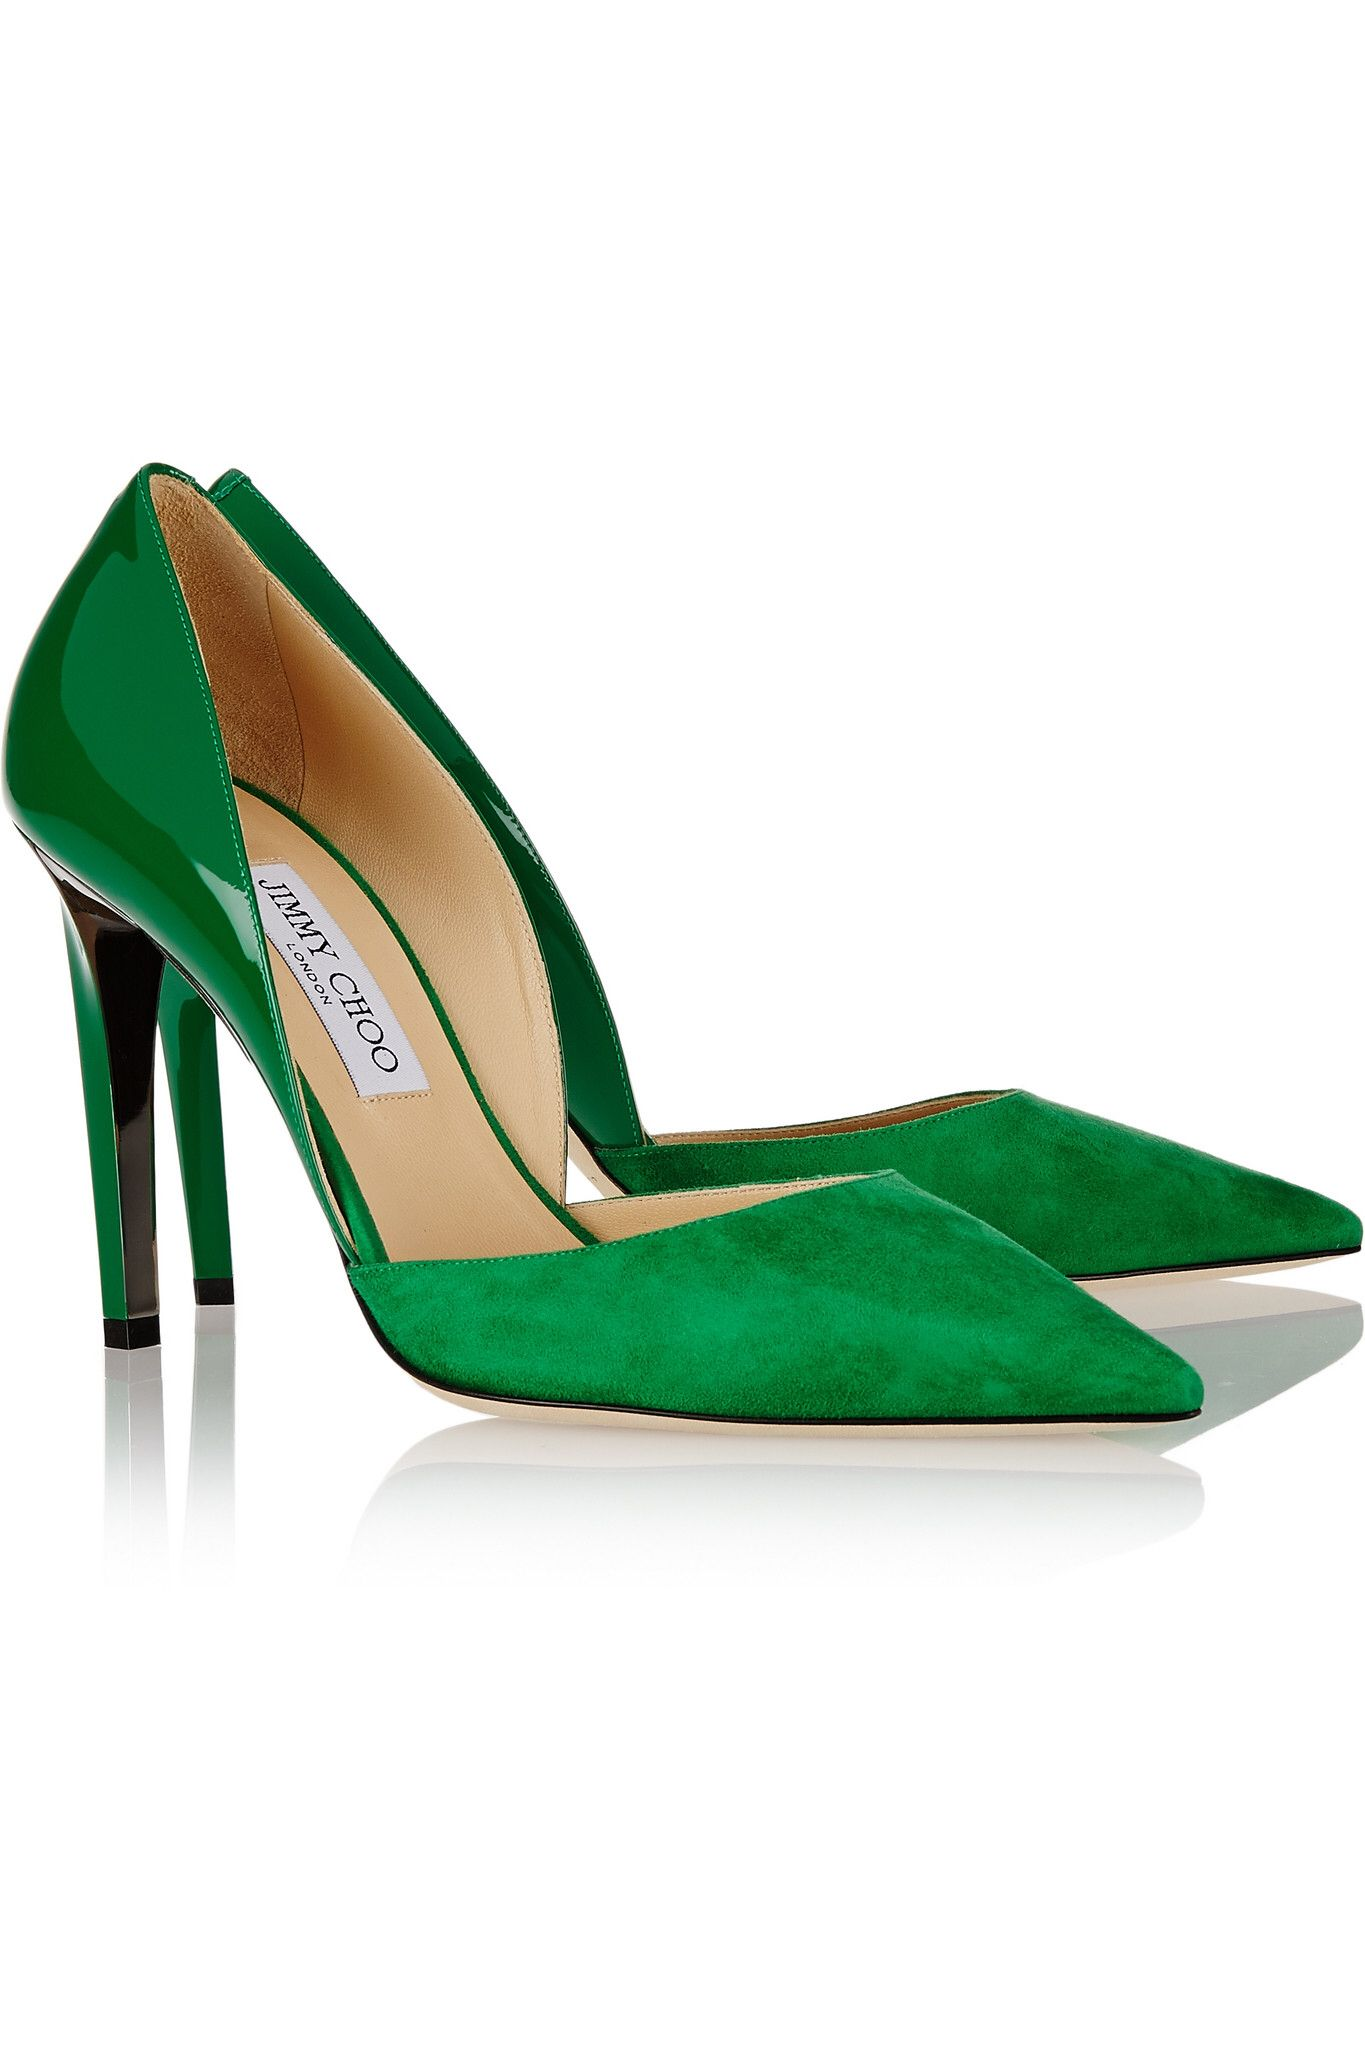 ca6a937c028 Emerald Jimmy Choo pumps